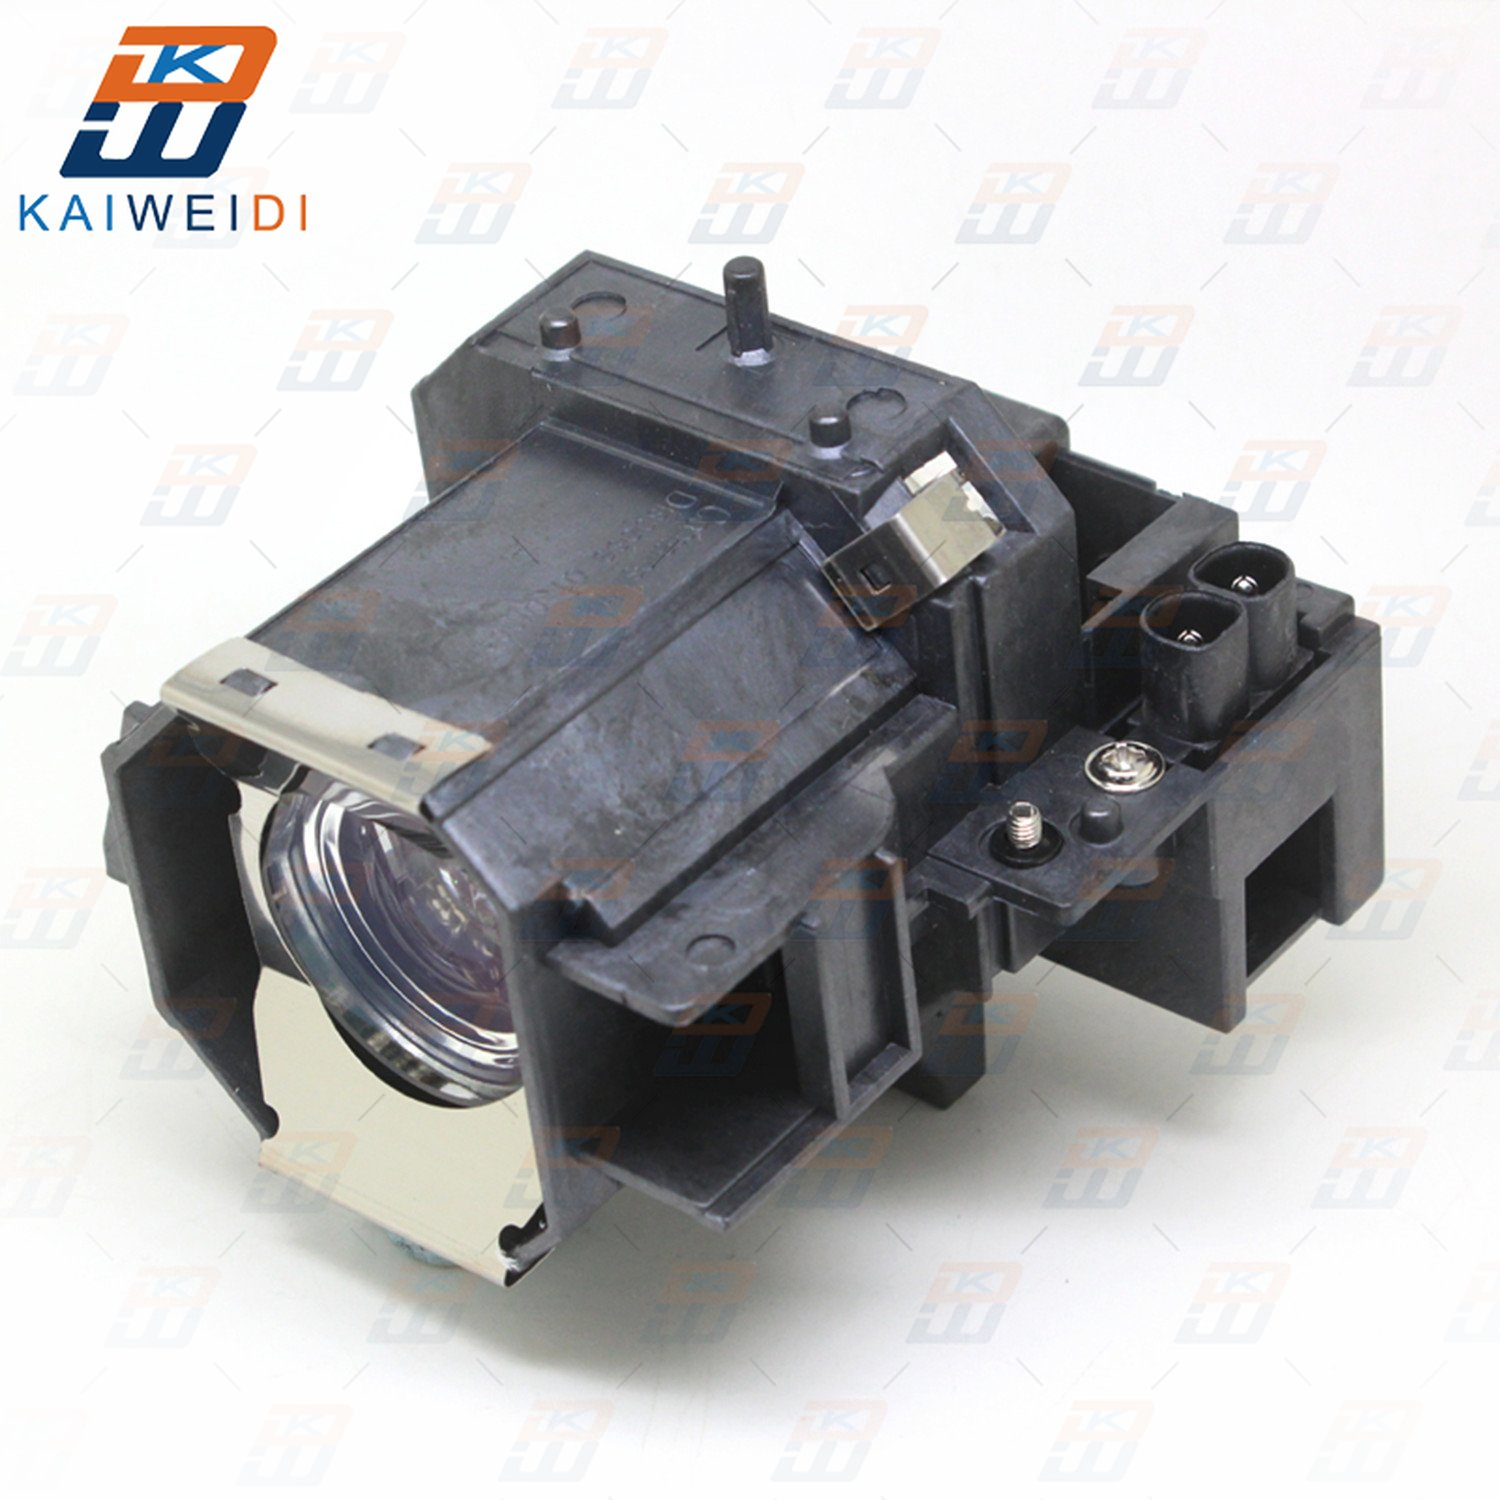 For ELPLP35 V13H010L35 Replacement Projector Lamp For Epson Cinema 550 V11H223020MB EMP TW520 EMP TW600 EMP TW620 EMP TW680